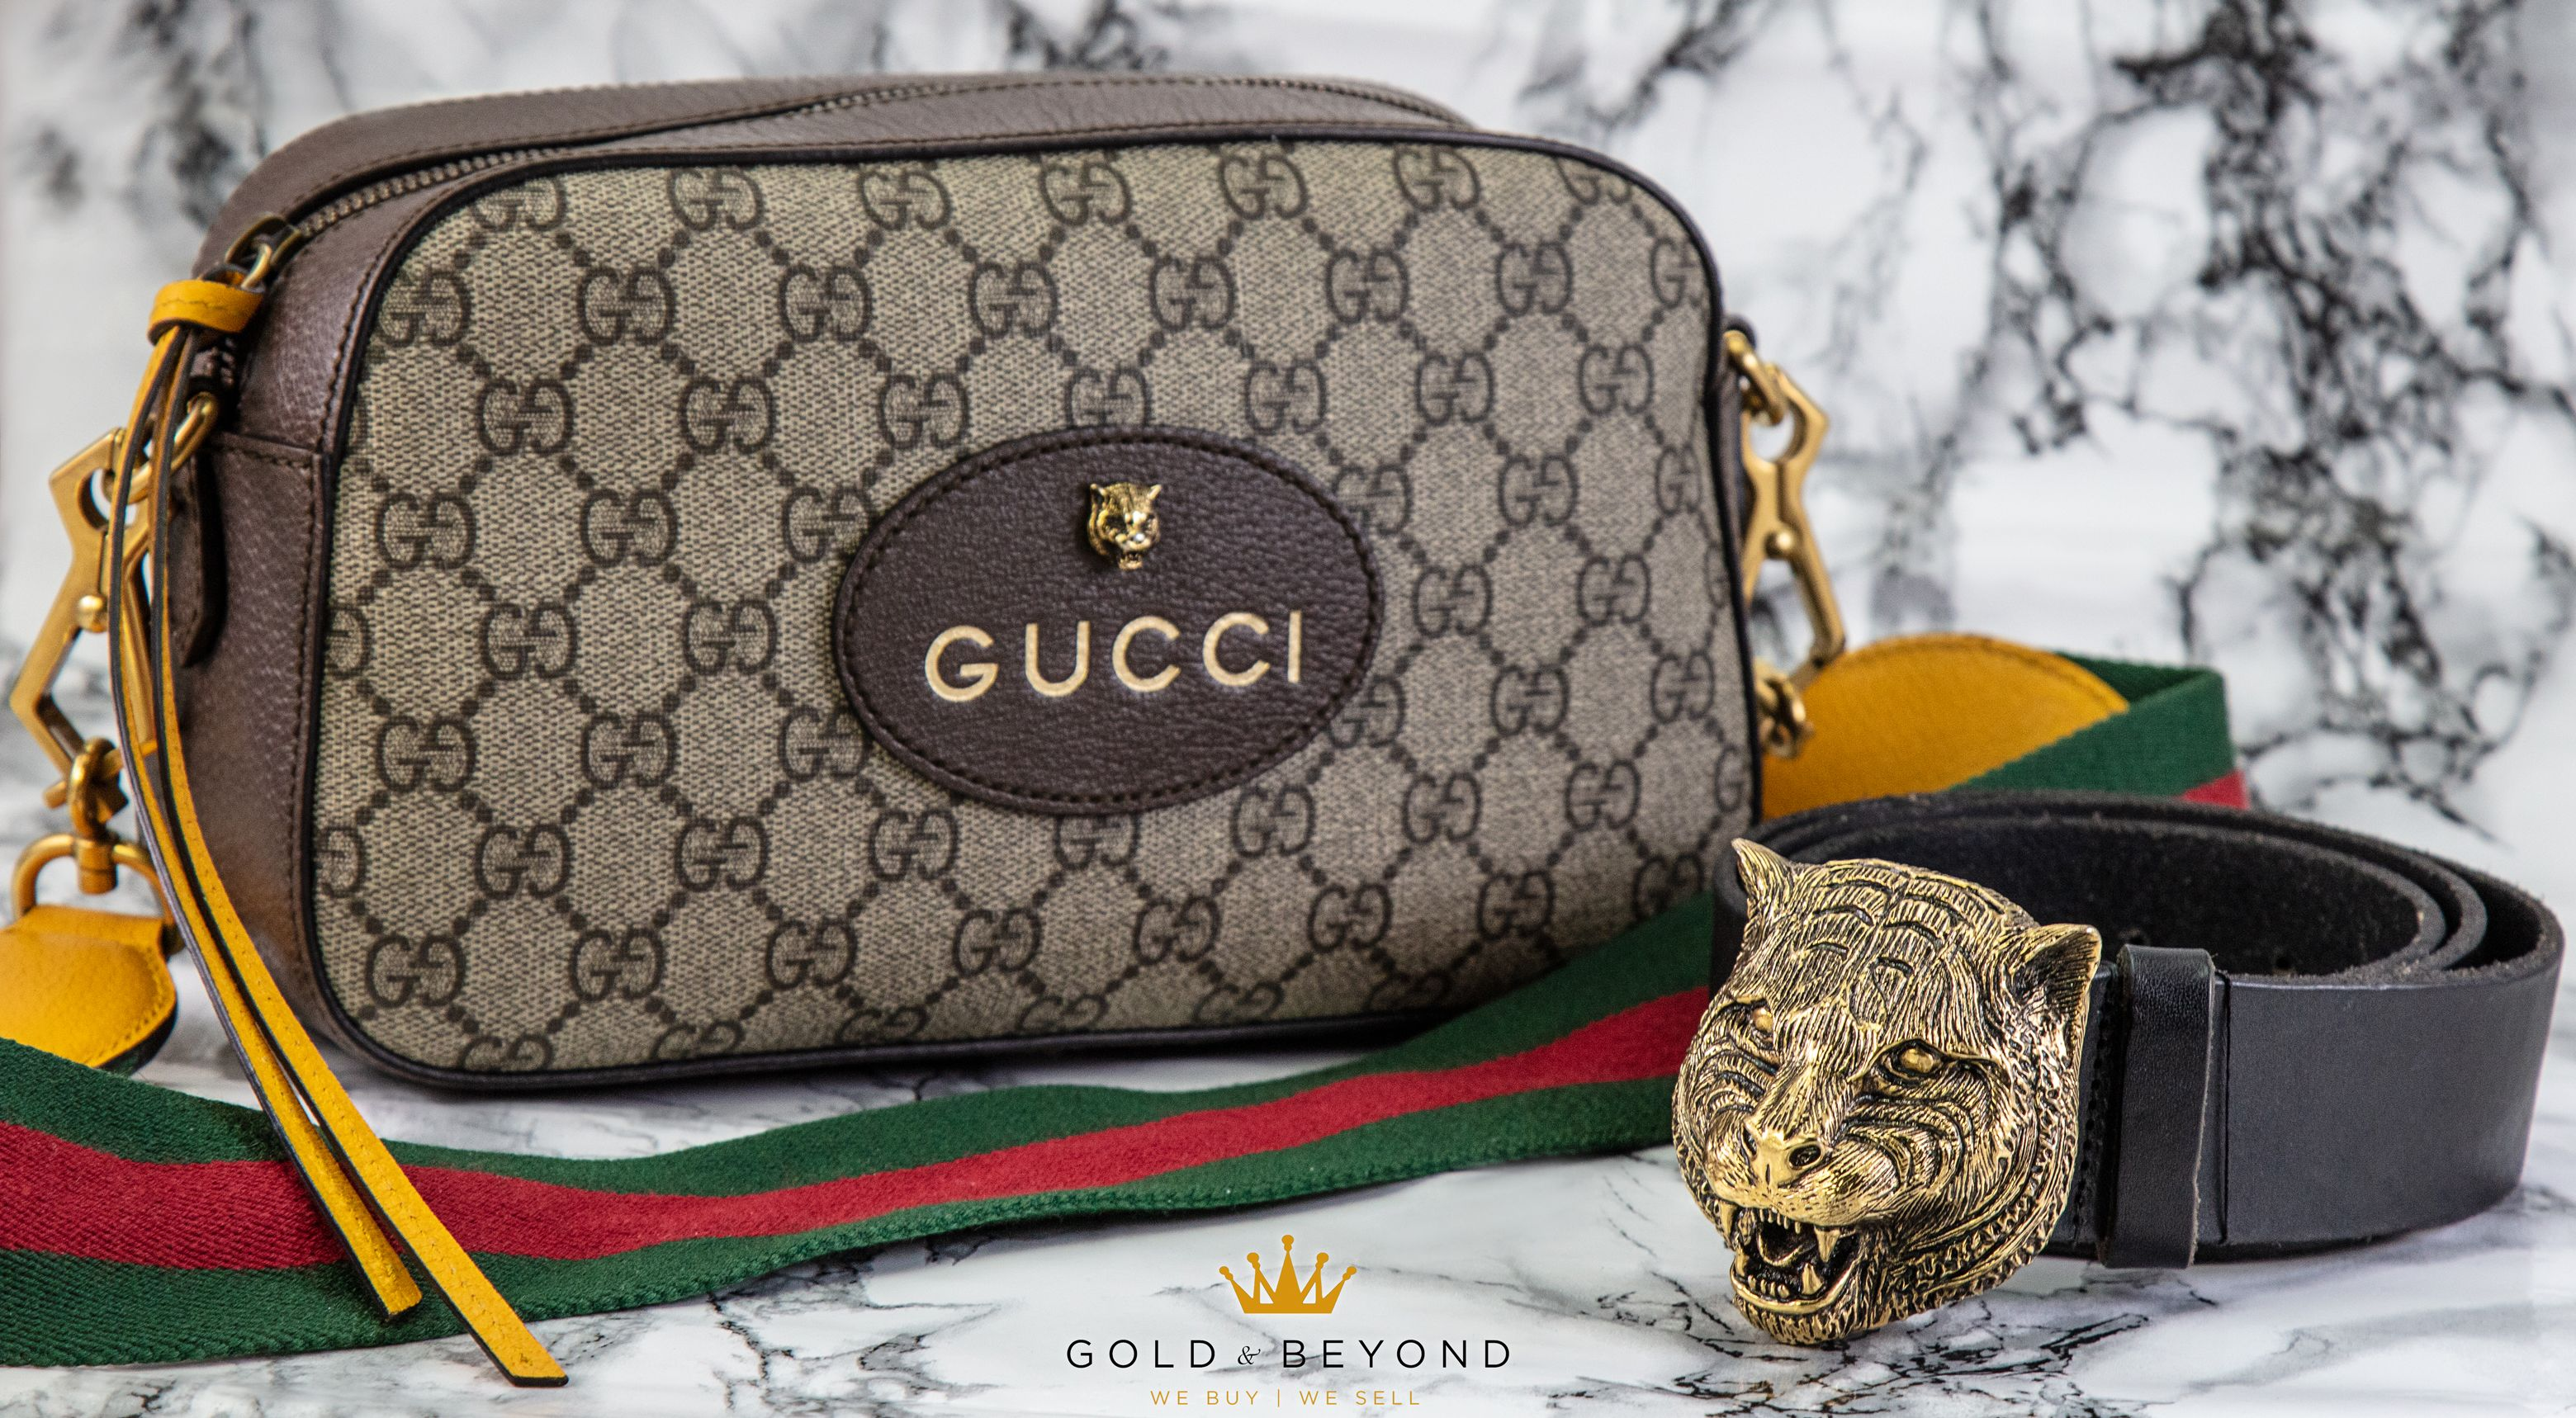 All Gucci Merchandise 10 Off Now Don